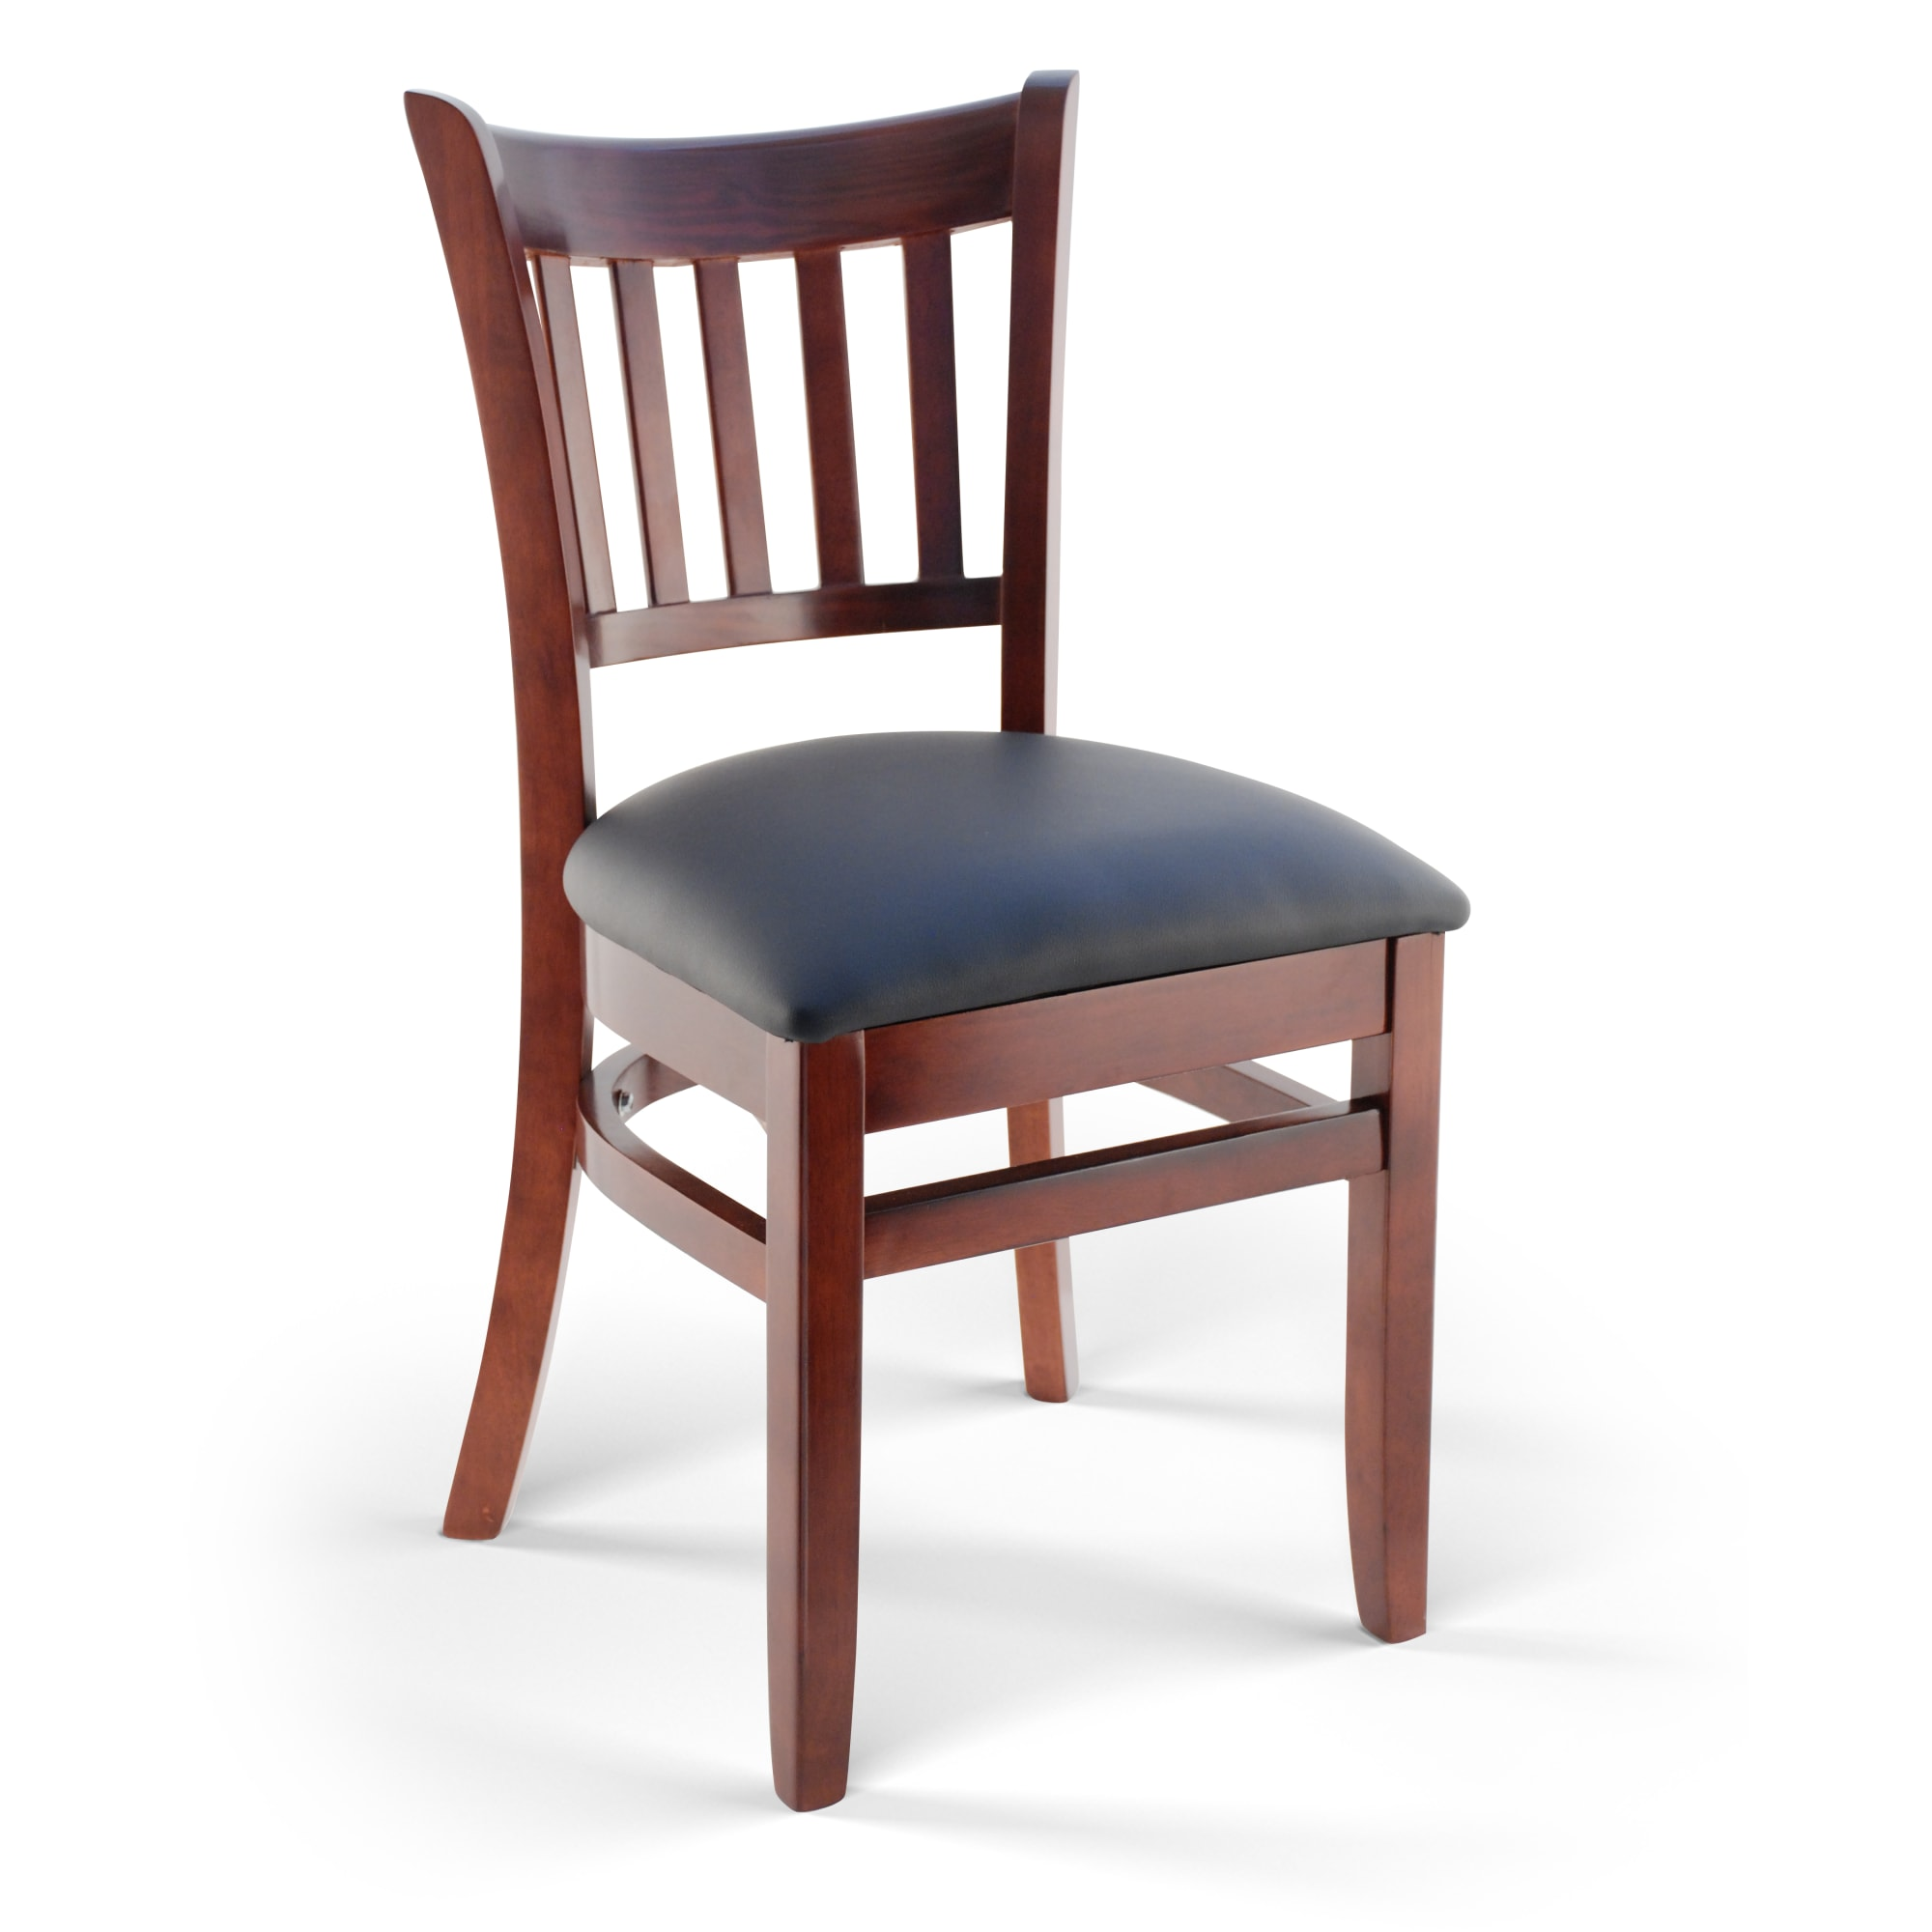 Premium US Made Vertical Slat Wood Chair with Premium US Made Vertical Slat Wood Chair